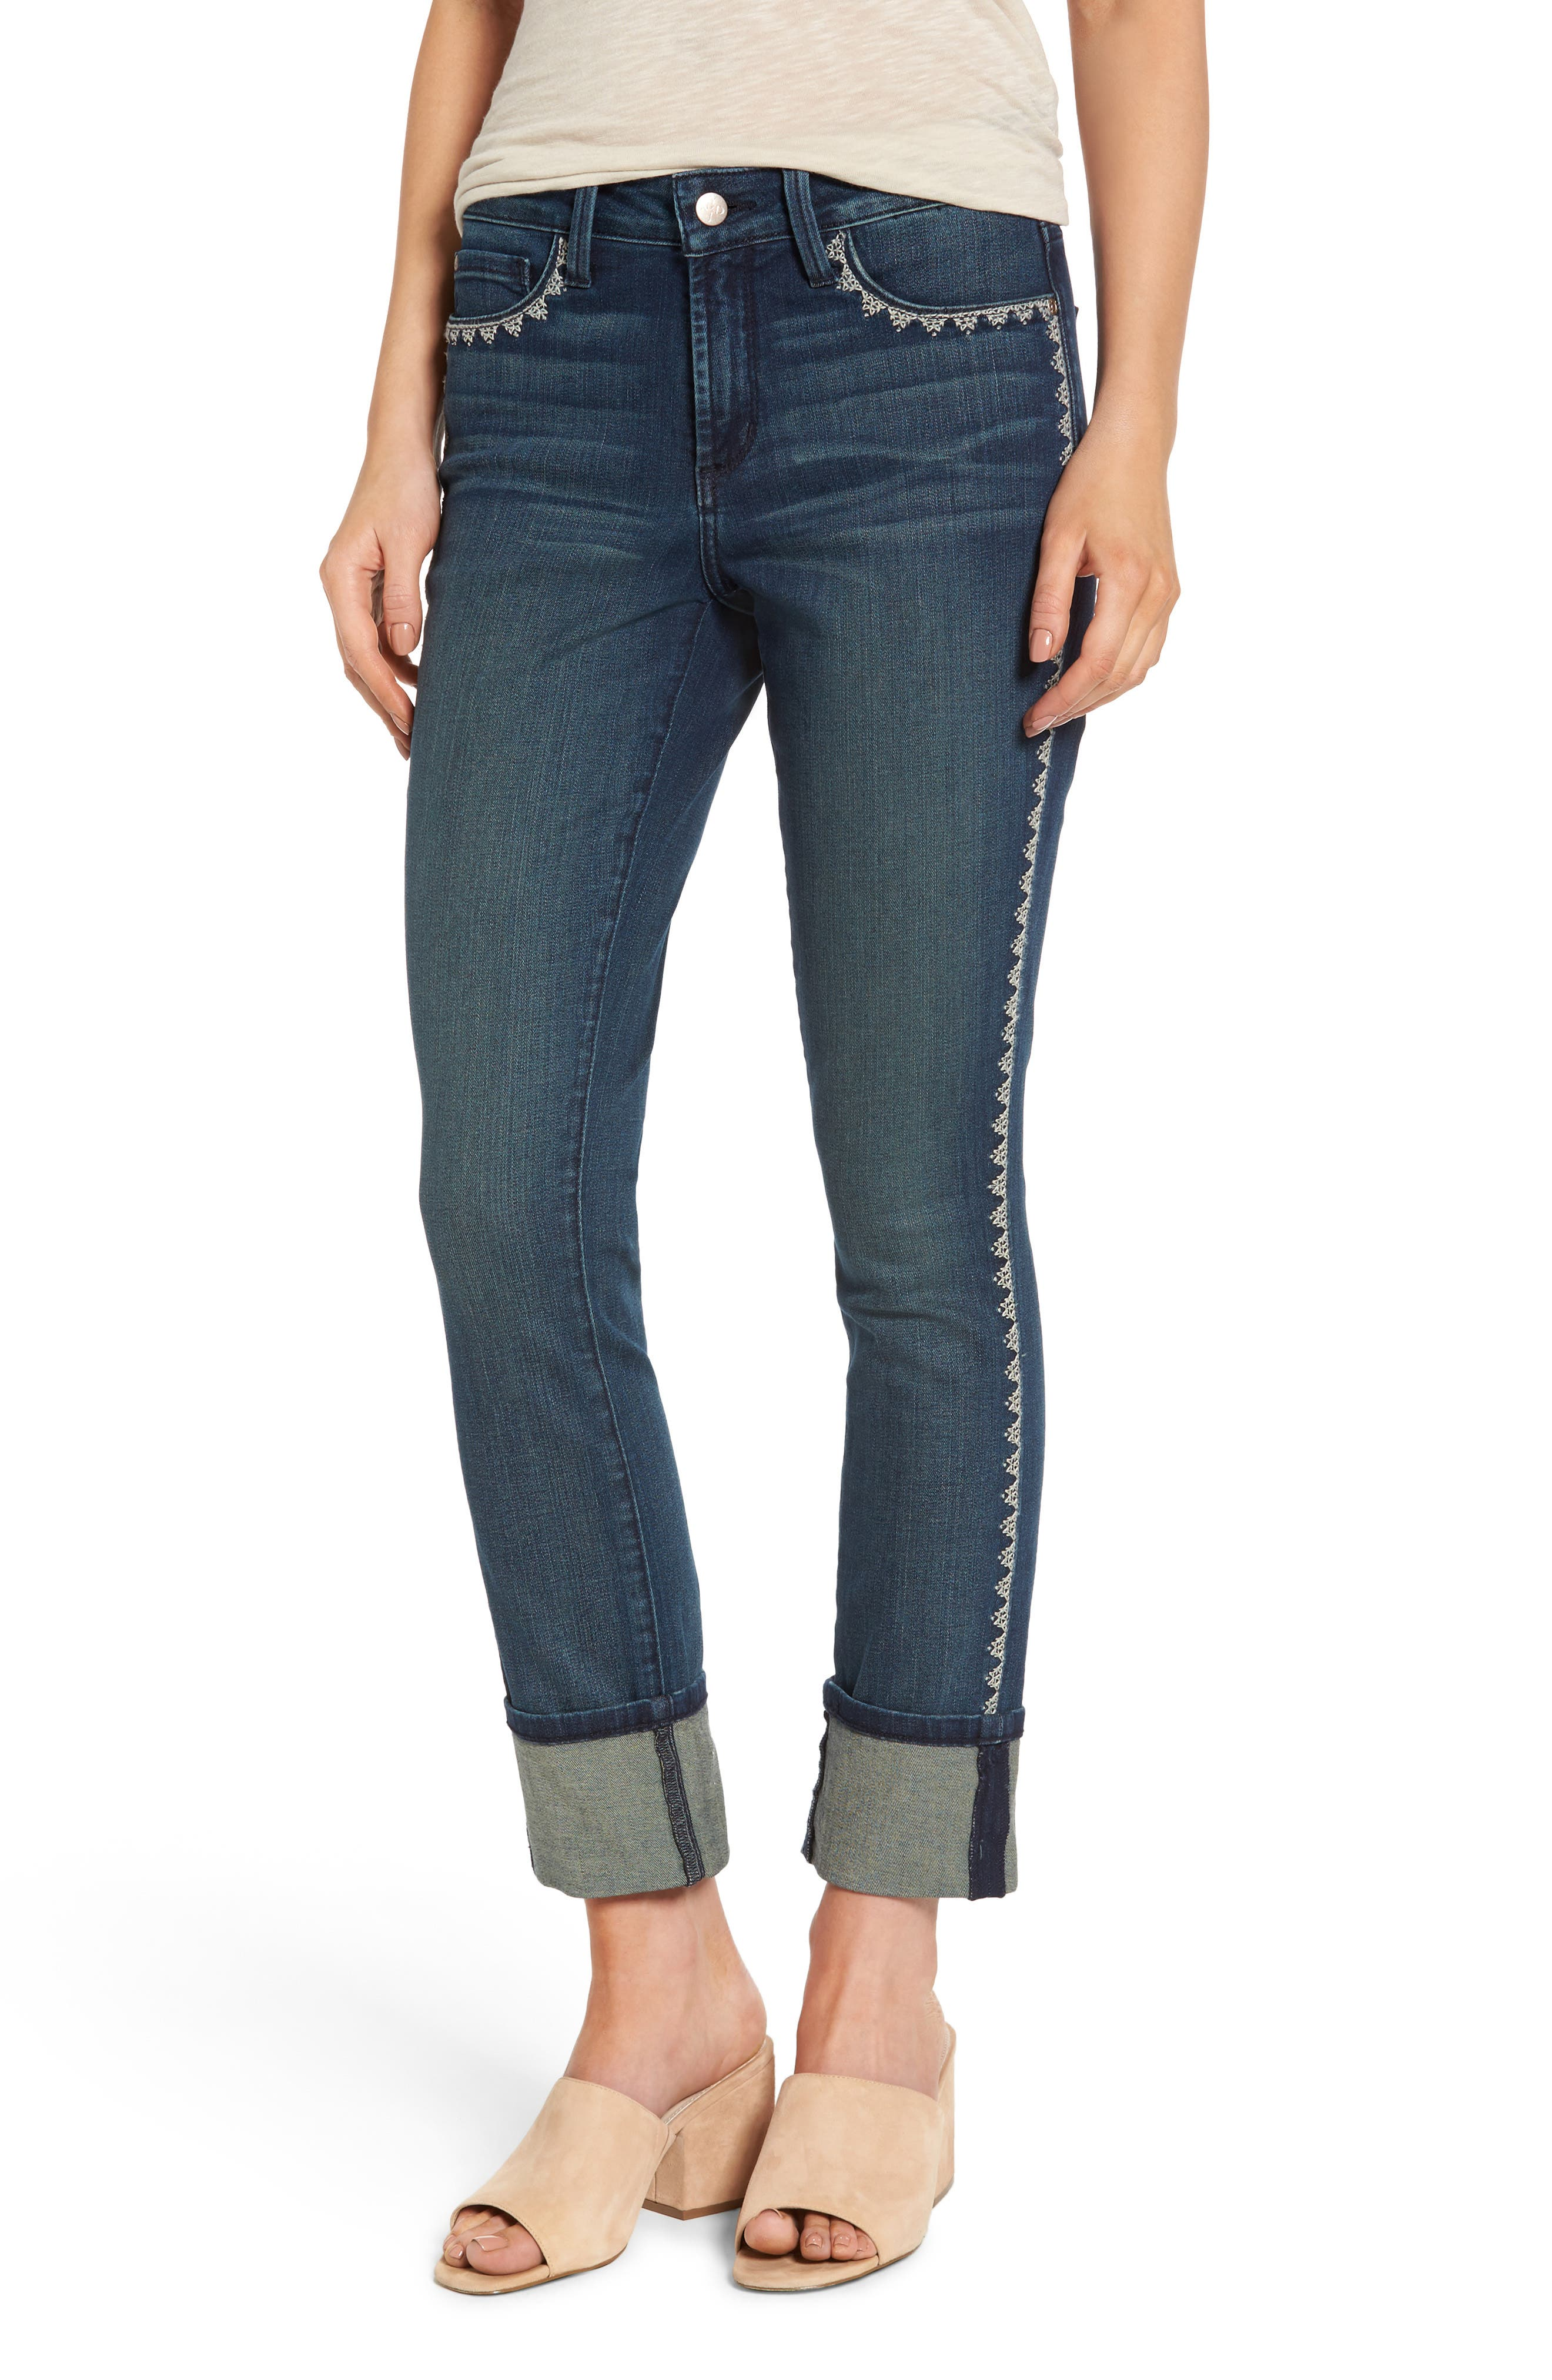 Alina Embroidered Wide Cuff Stretch Ankle Jeans,                             Main thumbnail 1, color,                             438